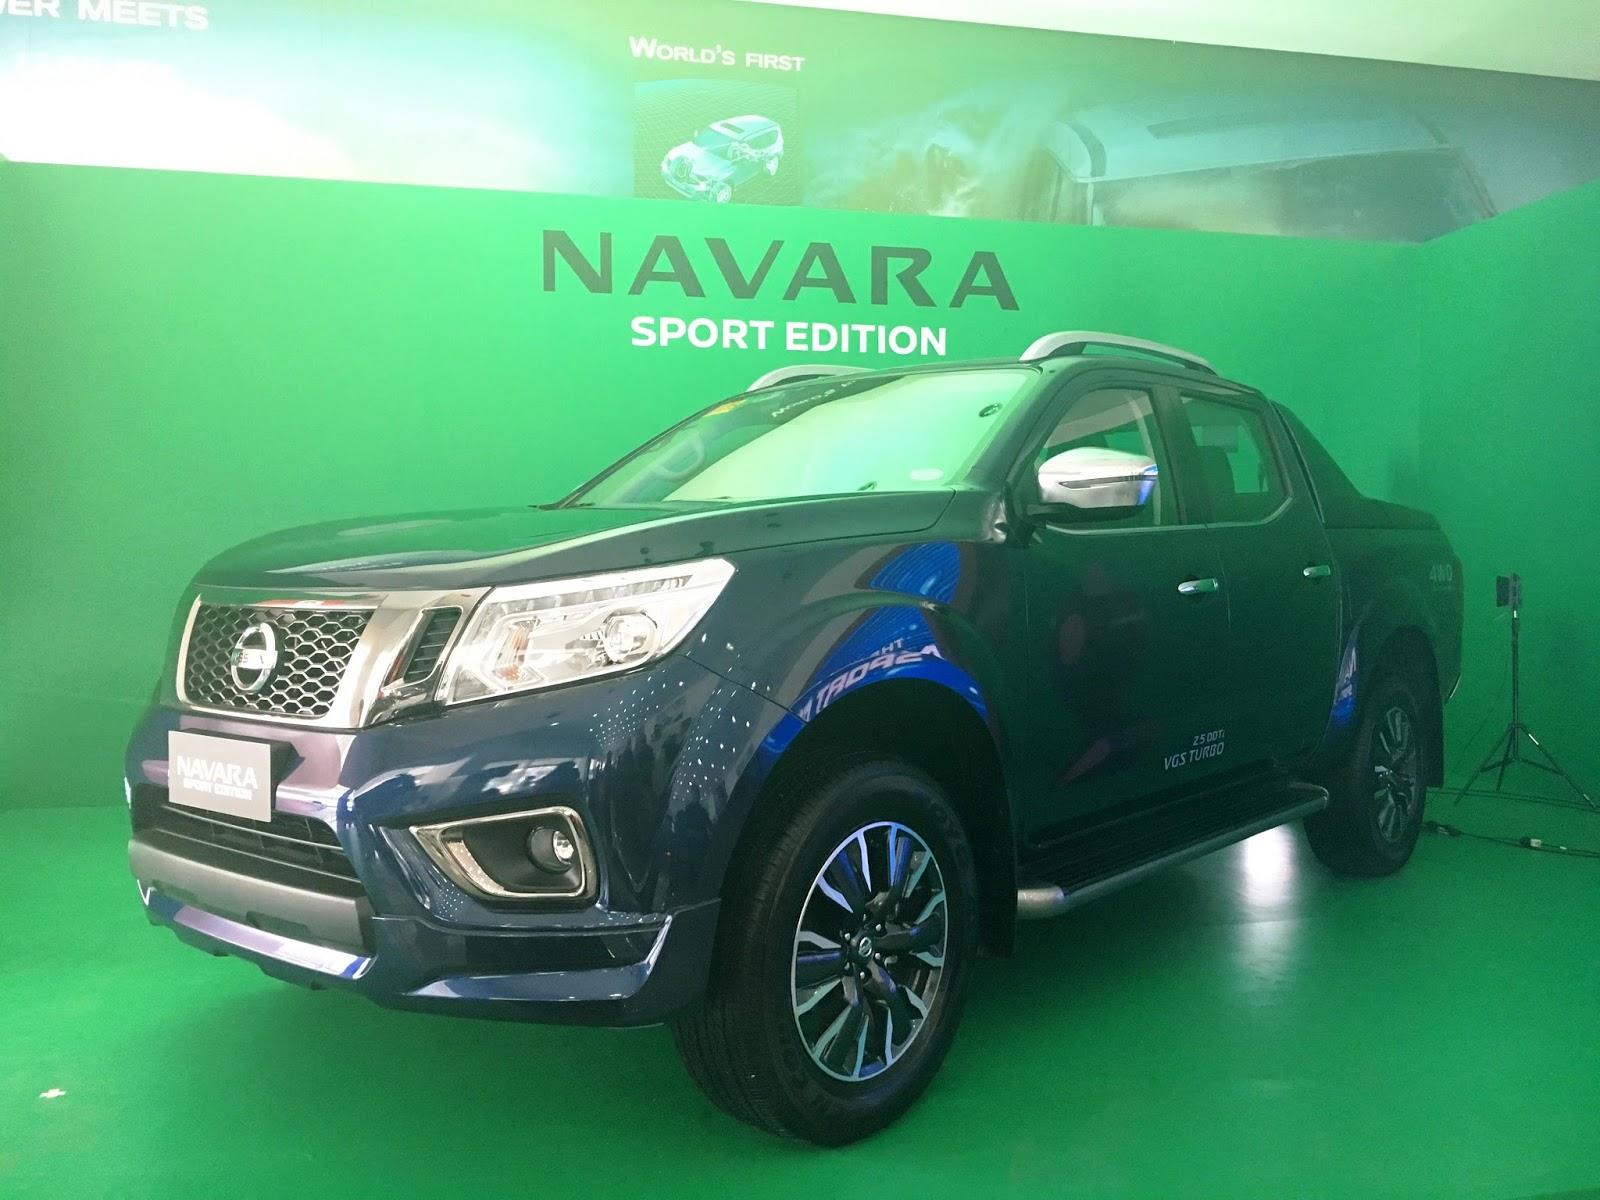 First look at the new Nissan Navara Sports Edition